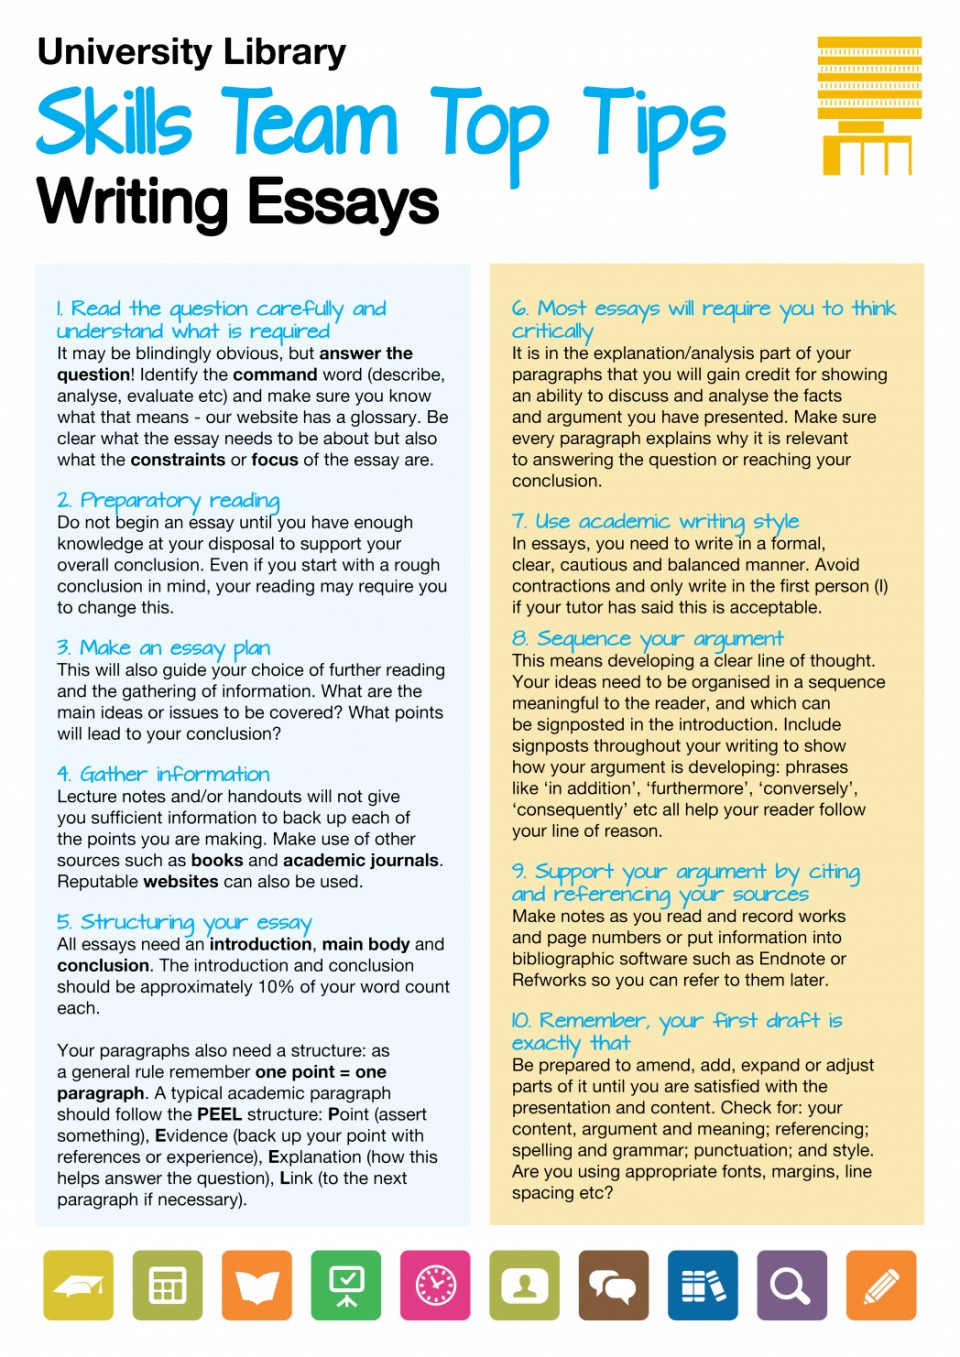 006 Parts Of Persuasive Essay Example Writing Introduction Previewverifierxkjhtnbdqxbvdecrd1zvlvtdue5vyqn13d8 Three Pdf Imposing 6 A 960